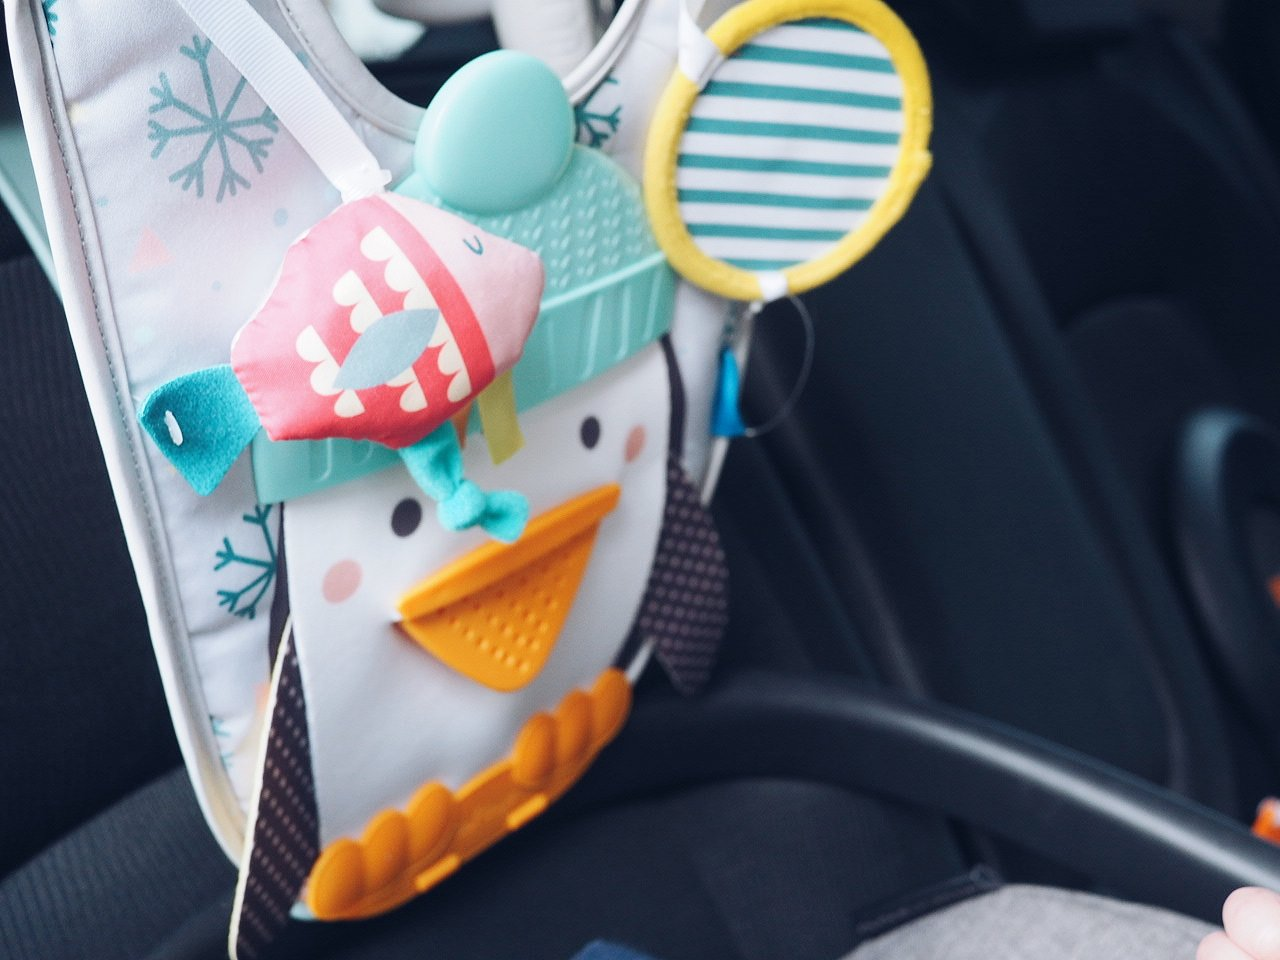 Taf Toys Penguin Play and Kick Car Toy | Review